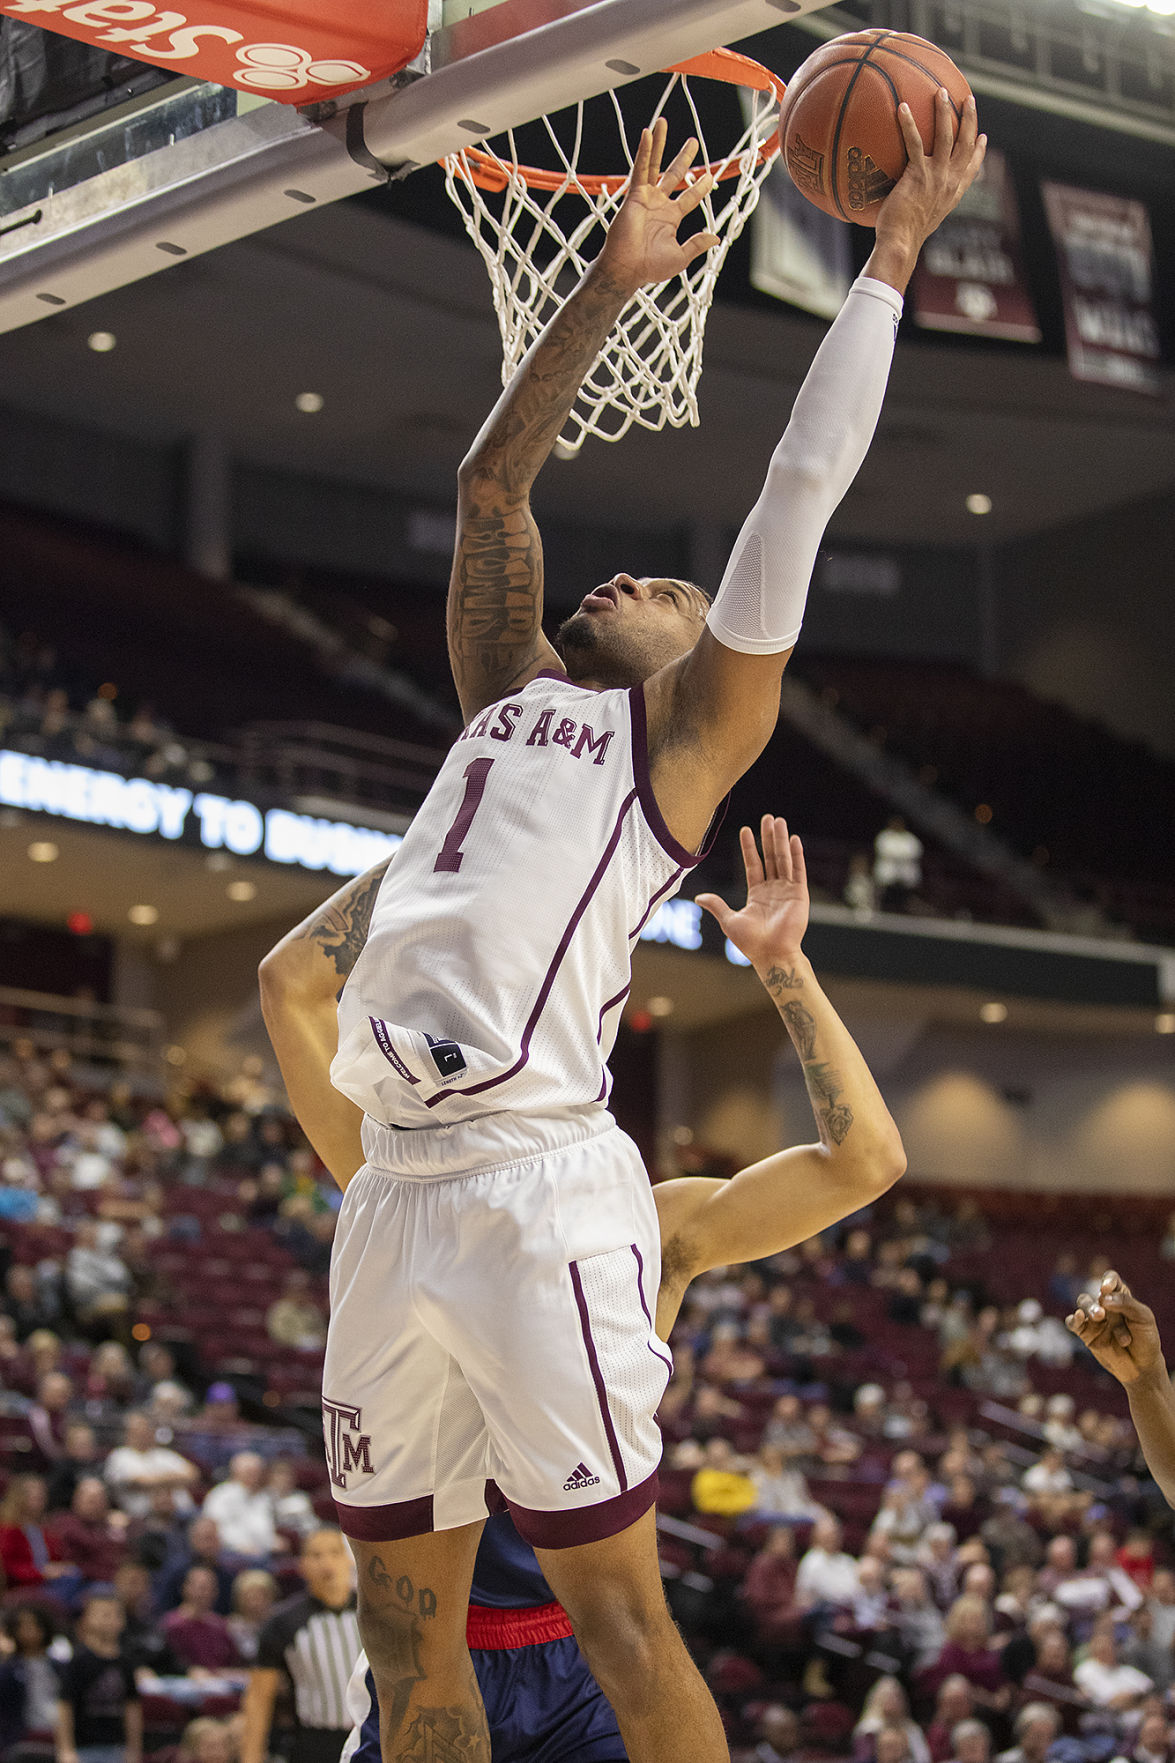 Texas A&M men's basketball vs Ole Miss